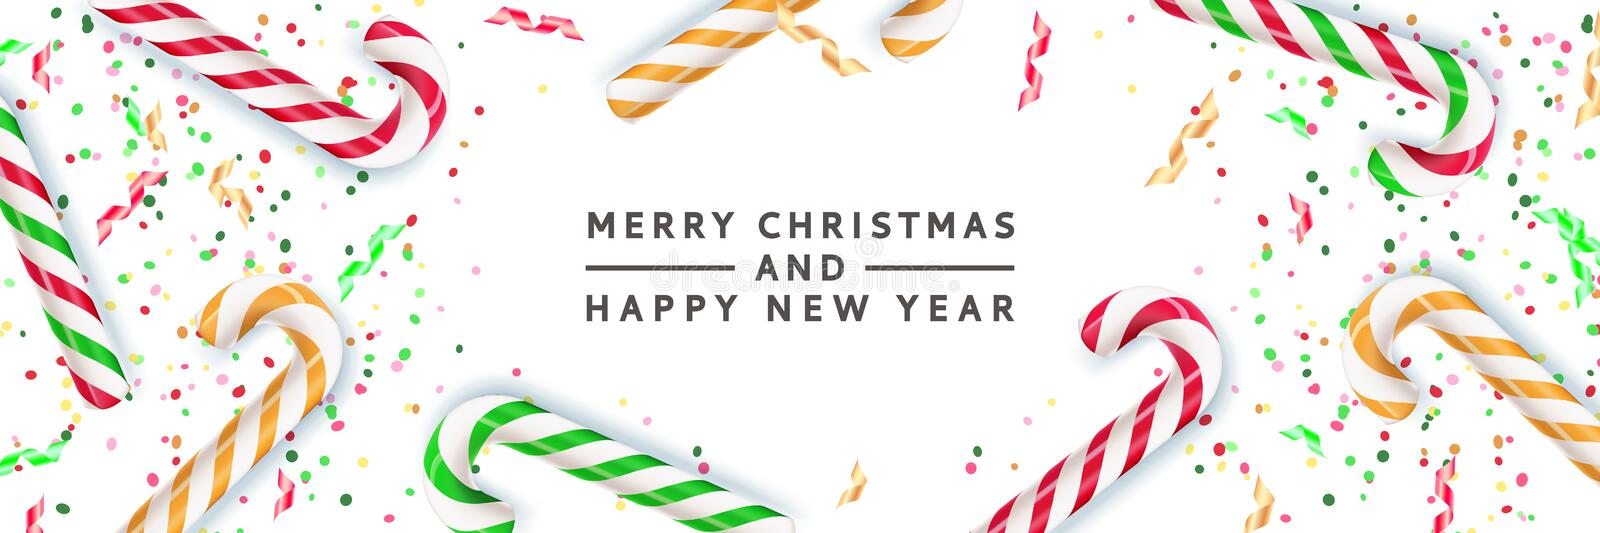 Merry Christmas, Happy New Year banner, poster background. Vector 3d realistic illustration of multicolor striped candy royalty free illustration